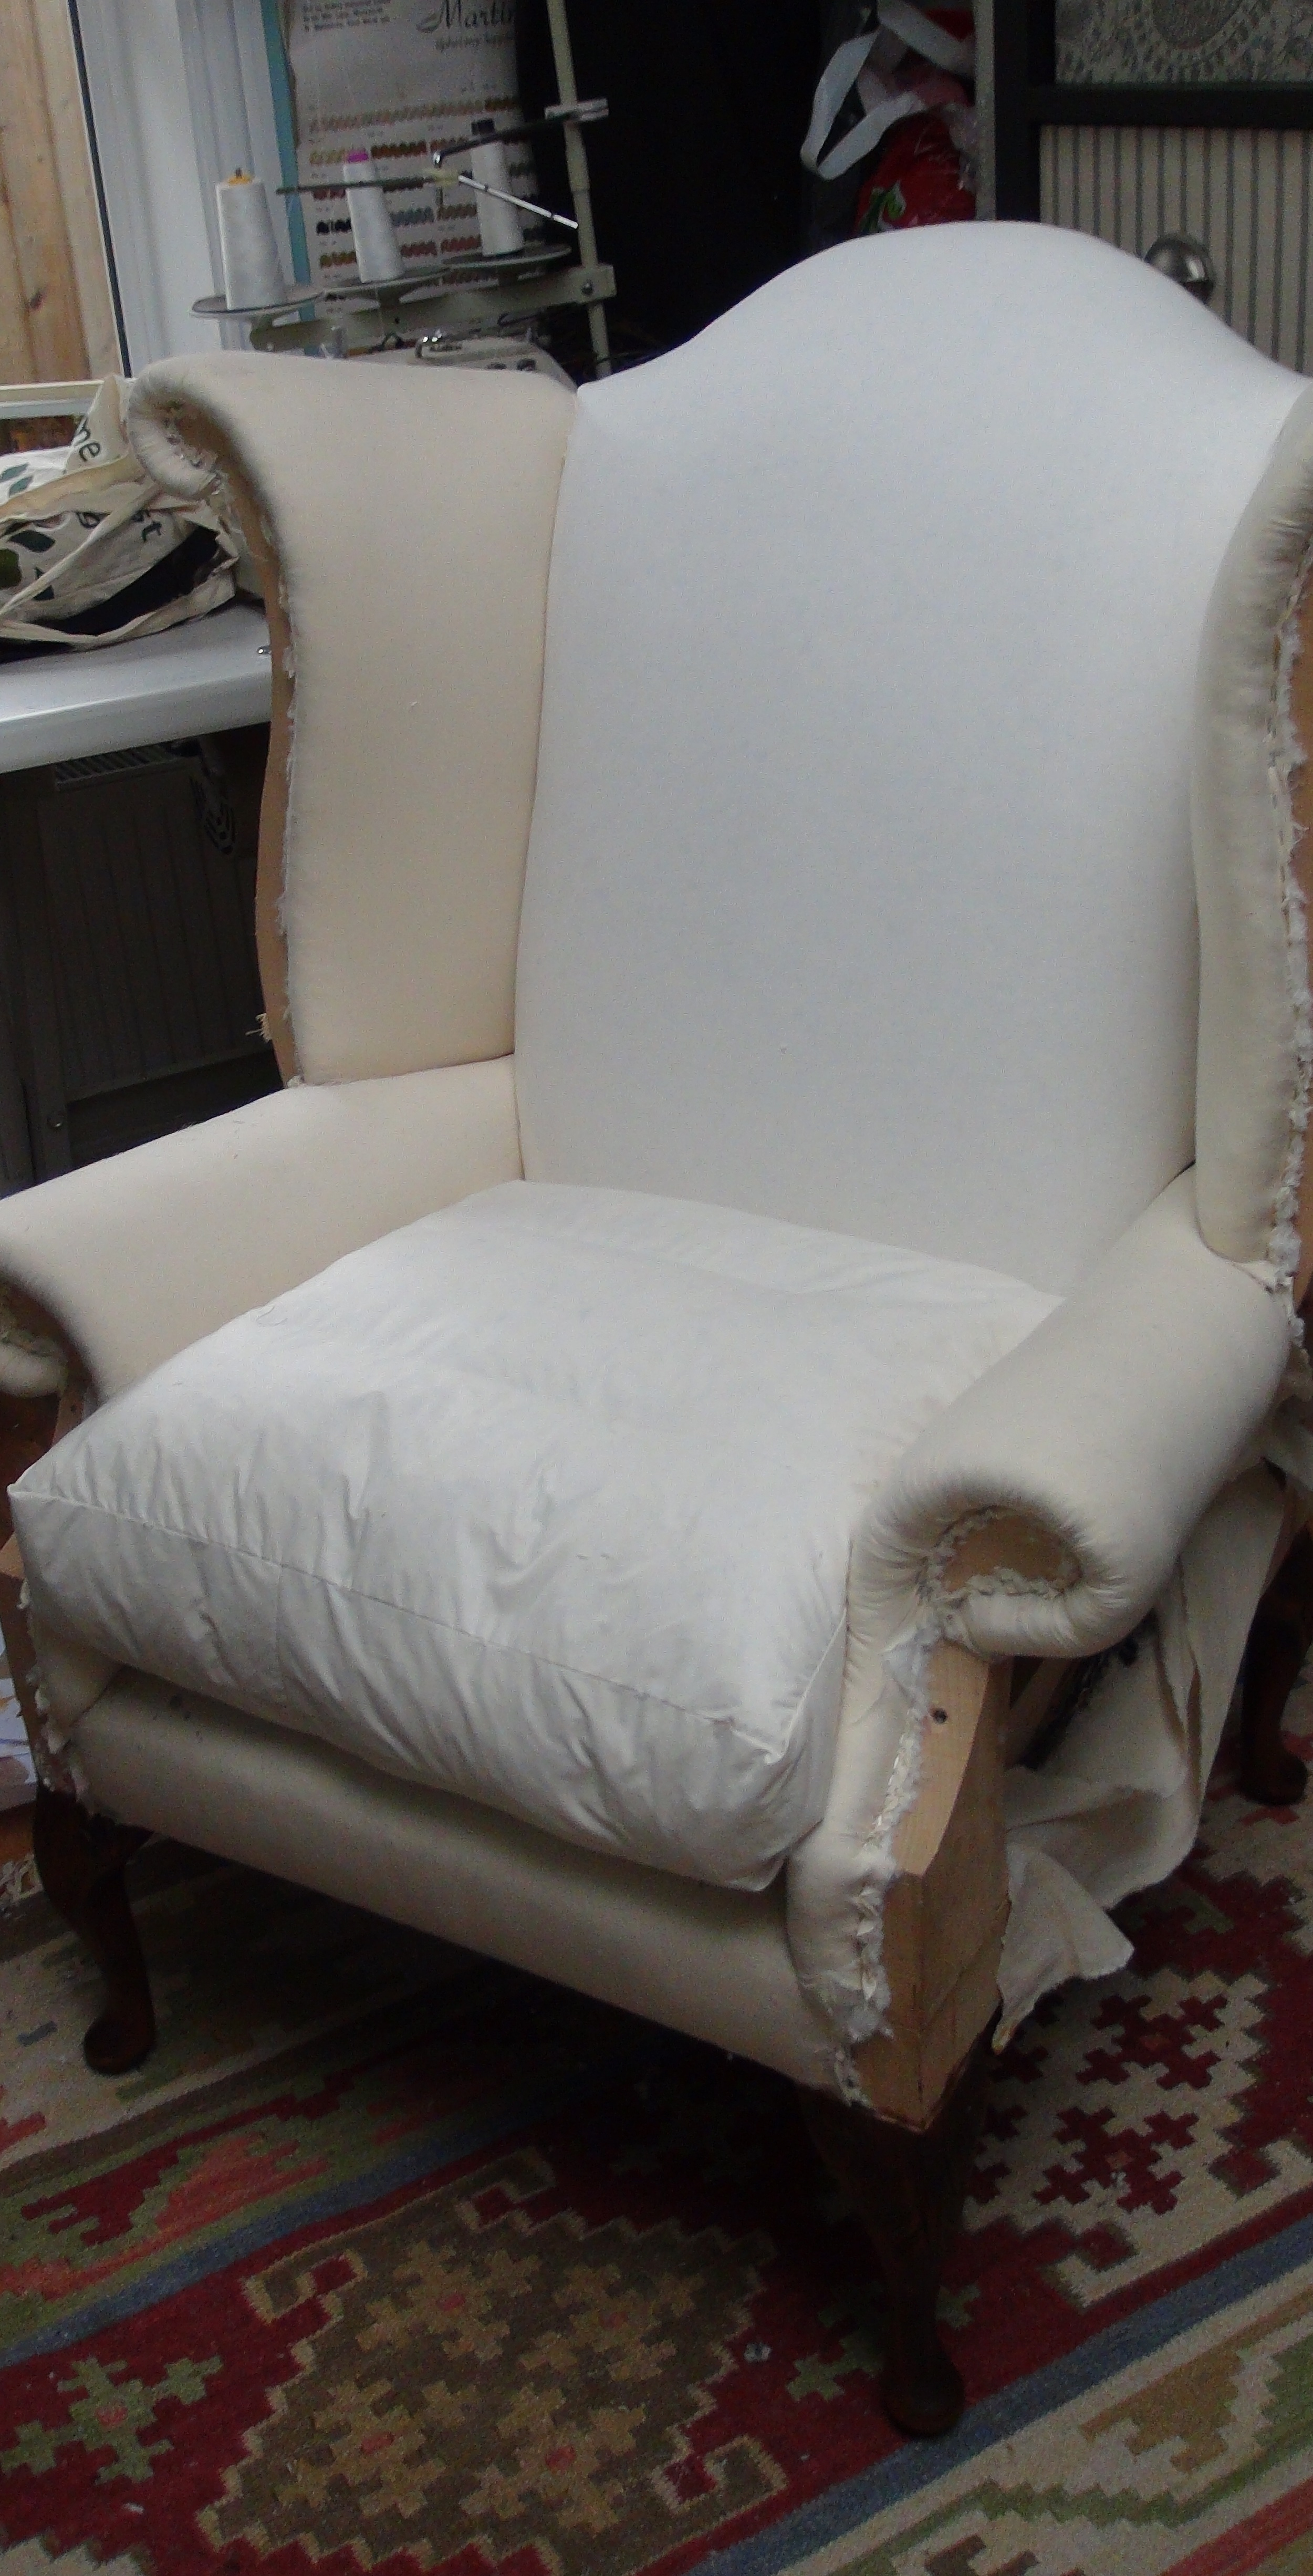 Cushions are a luxurious mix of feather and down  within a calico case with optional core. Chairs and chaise longues are finished in calico prior to top cover